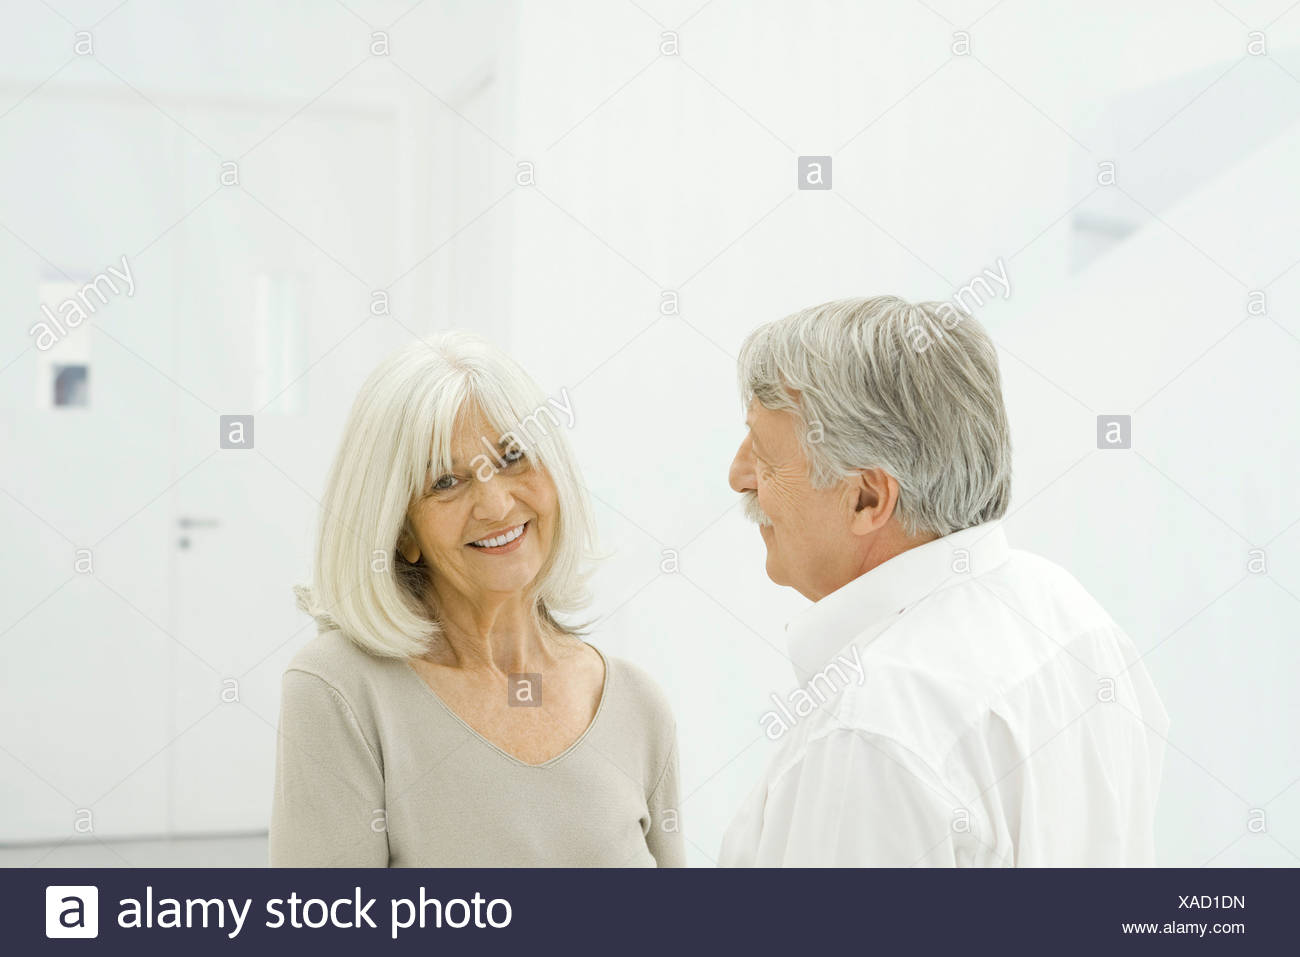 Senior couple standing face to face, woman smiling at camera - Stock Image